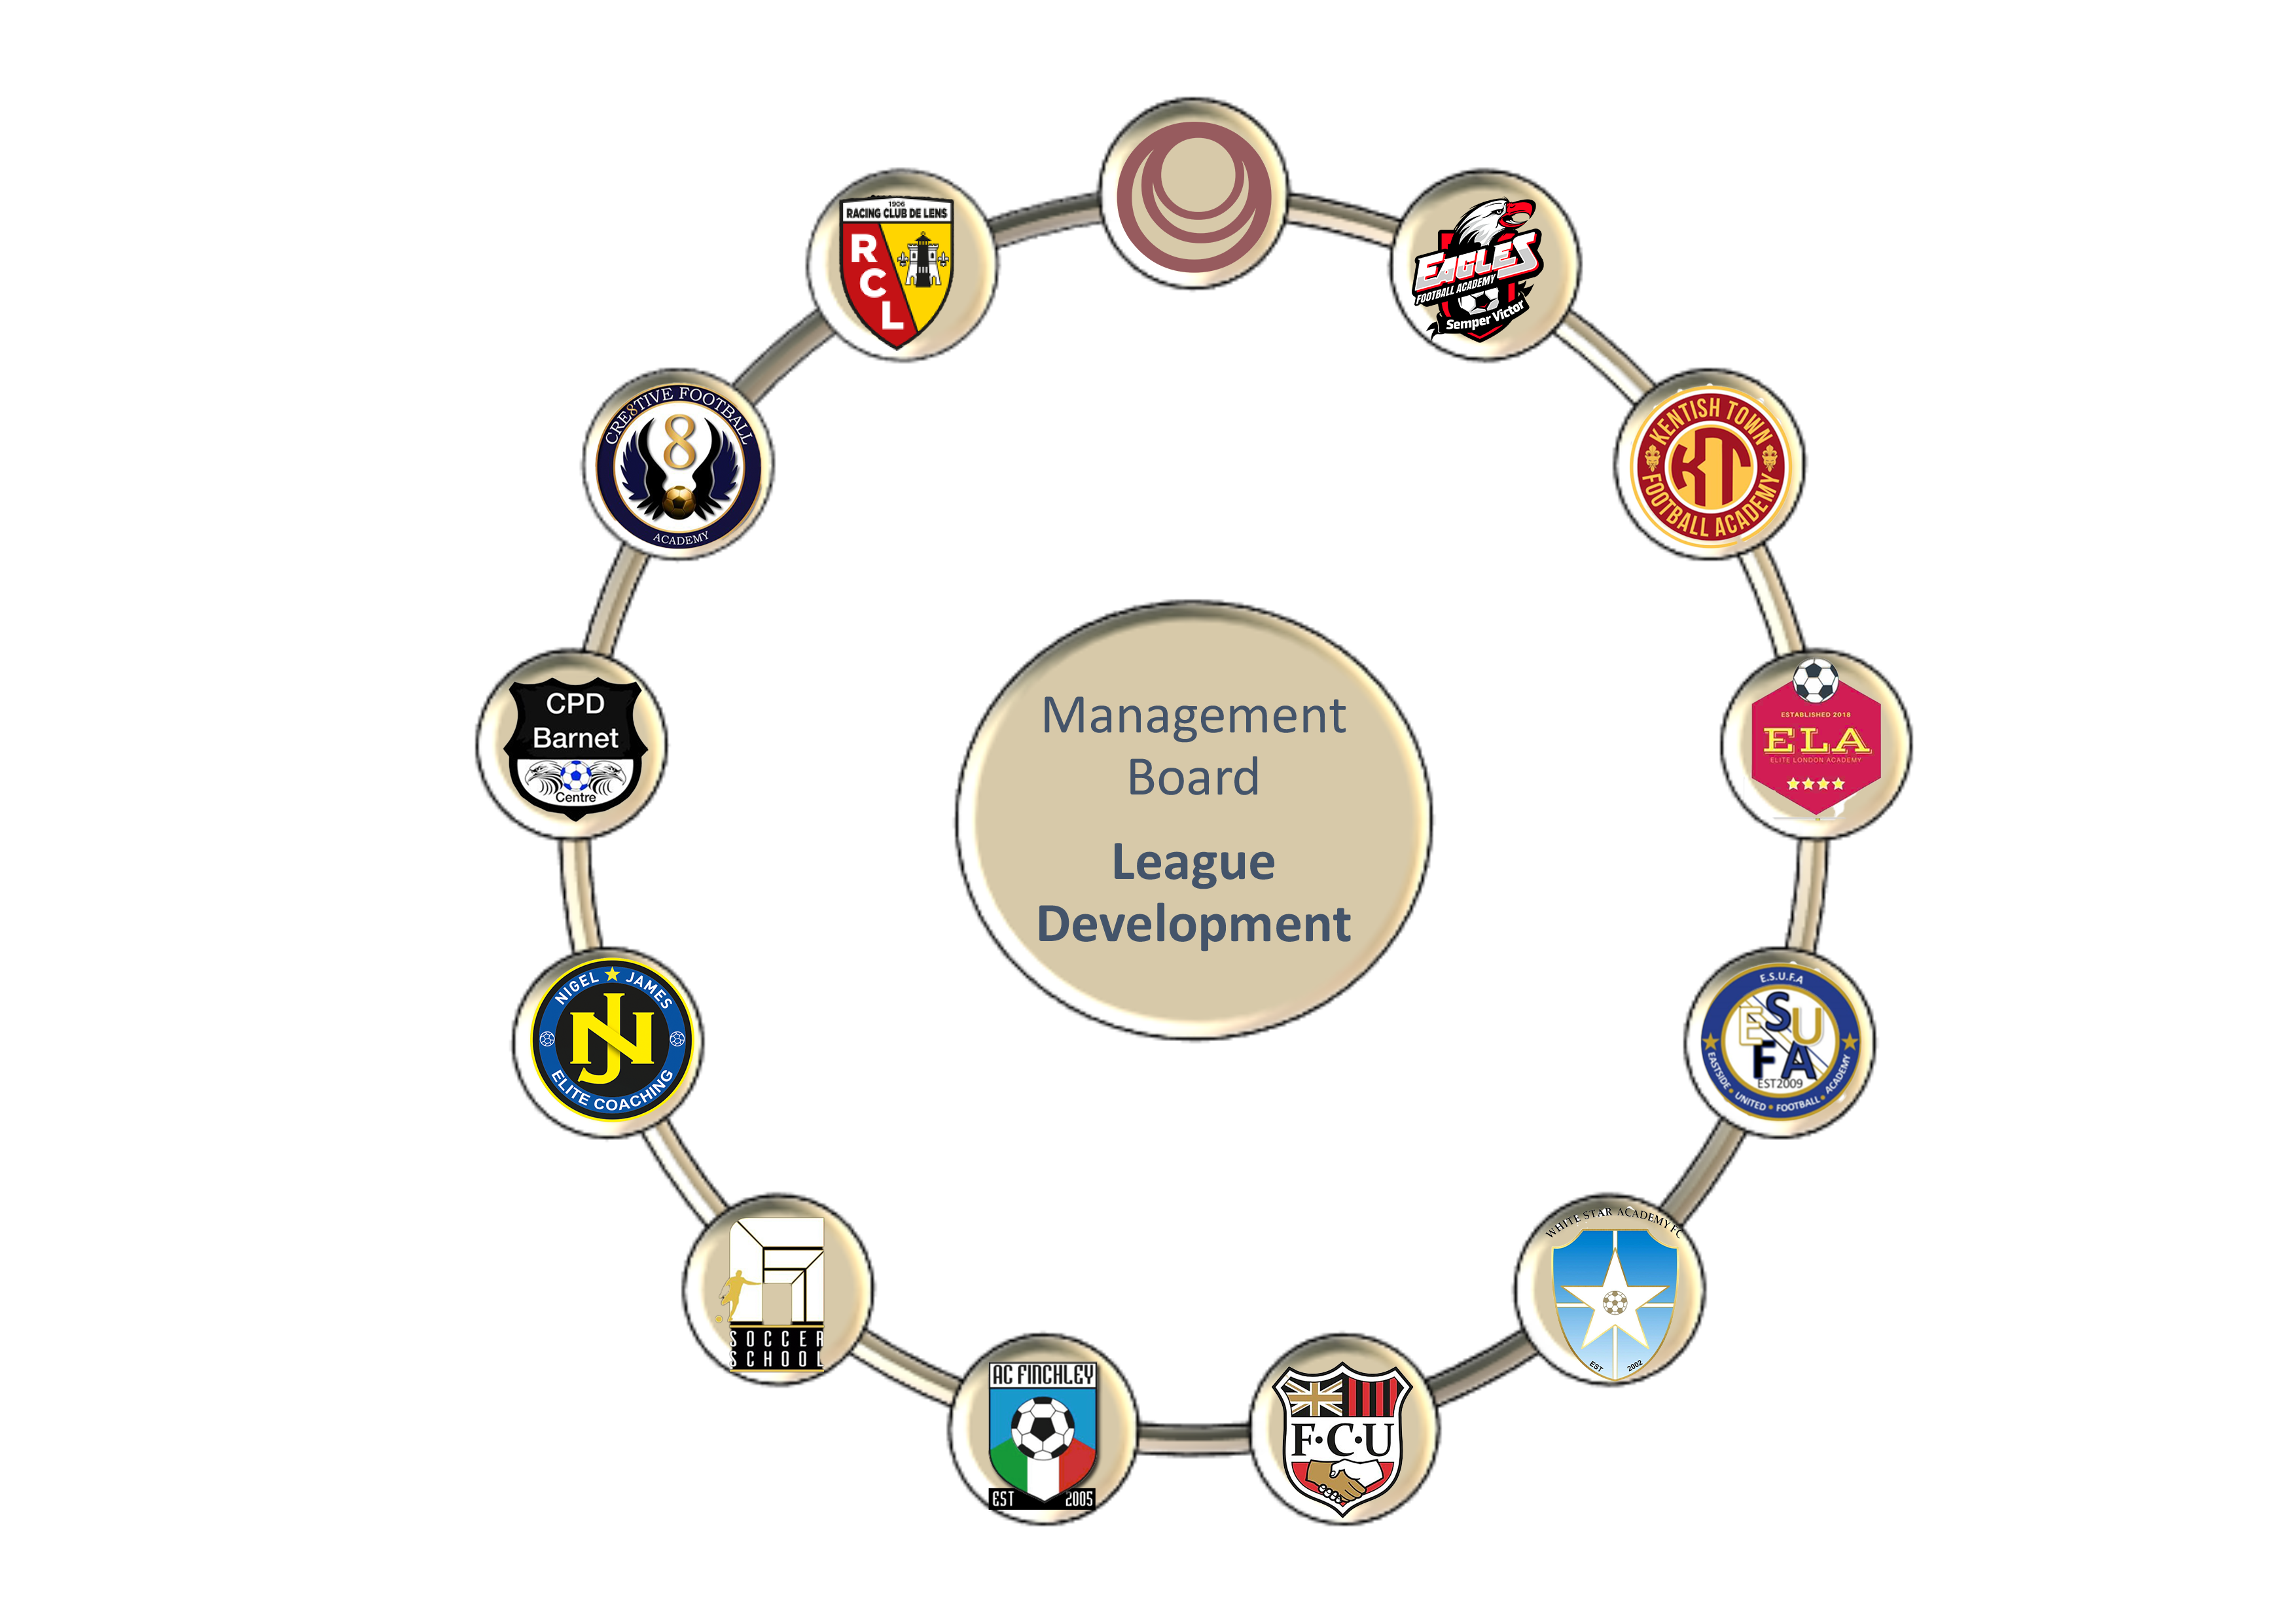 League development is supported by the most influential Clubs